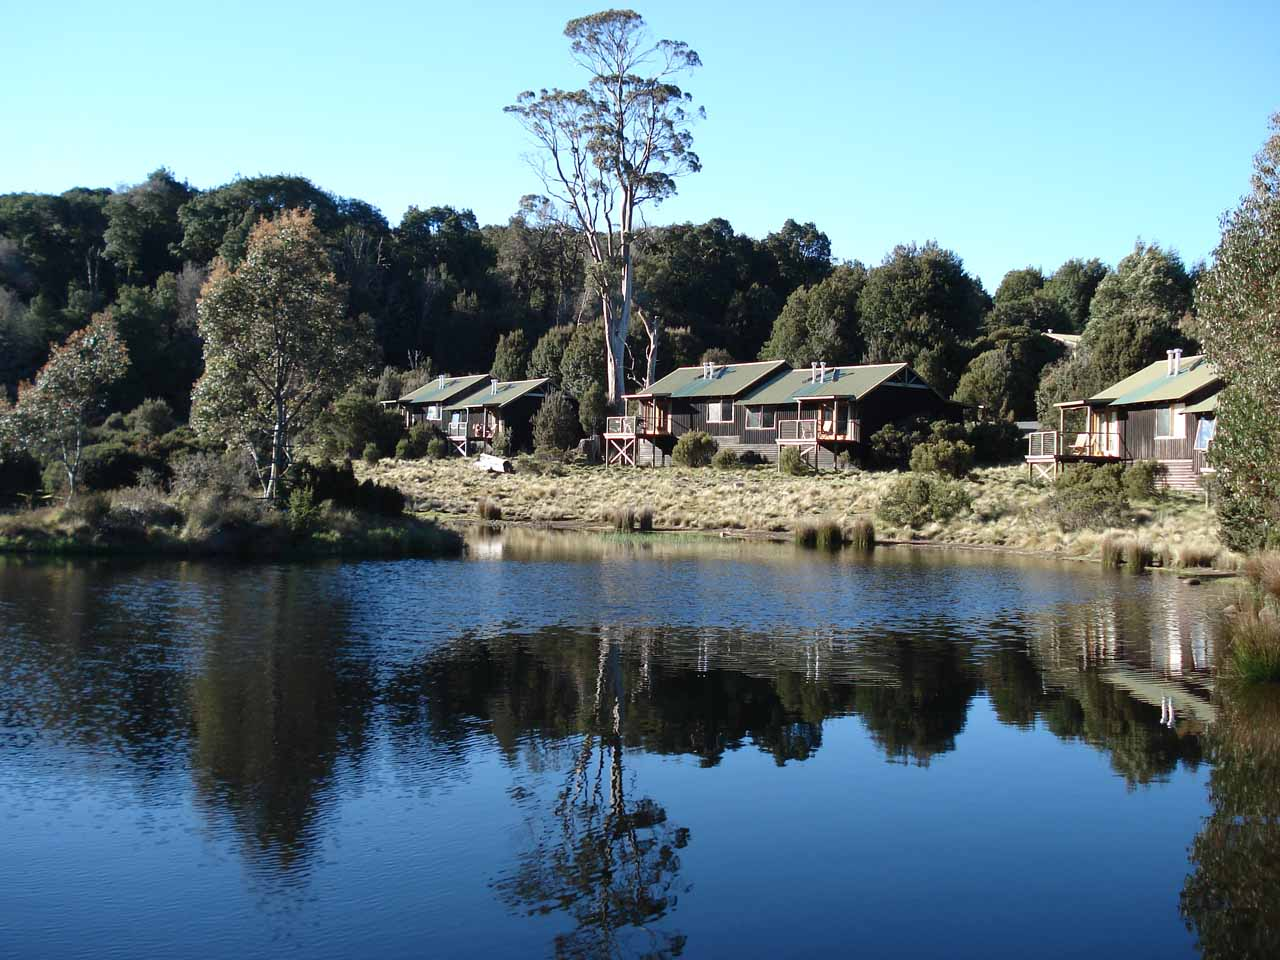 This picturesque little pond looking towards some cabins was the Cradle Mountain Lodge complex, which was where we stayed and it was also close to the trailhead for Pencil Pine Falls